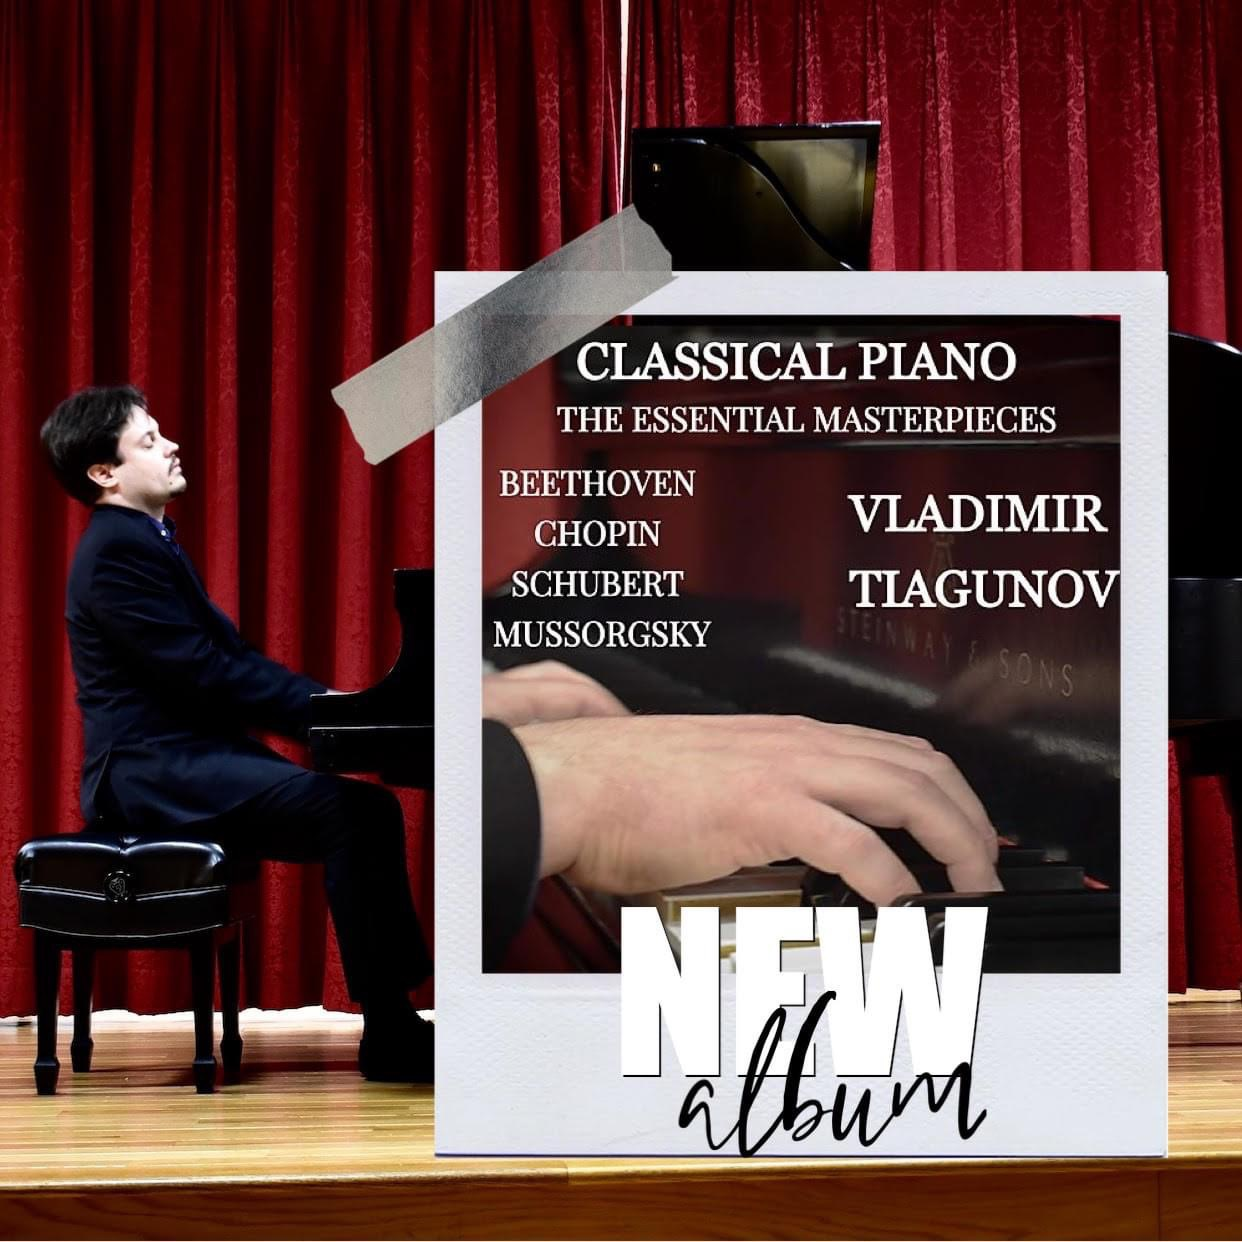 Gifted Pianist, Vladimir Tiagunov, has announced the release of his album, 'Classical Piano: The Essential Masterpieces'